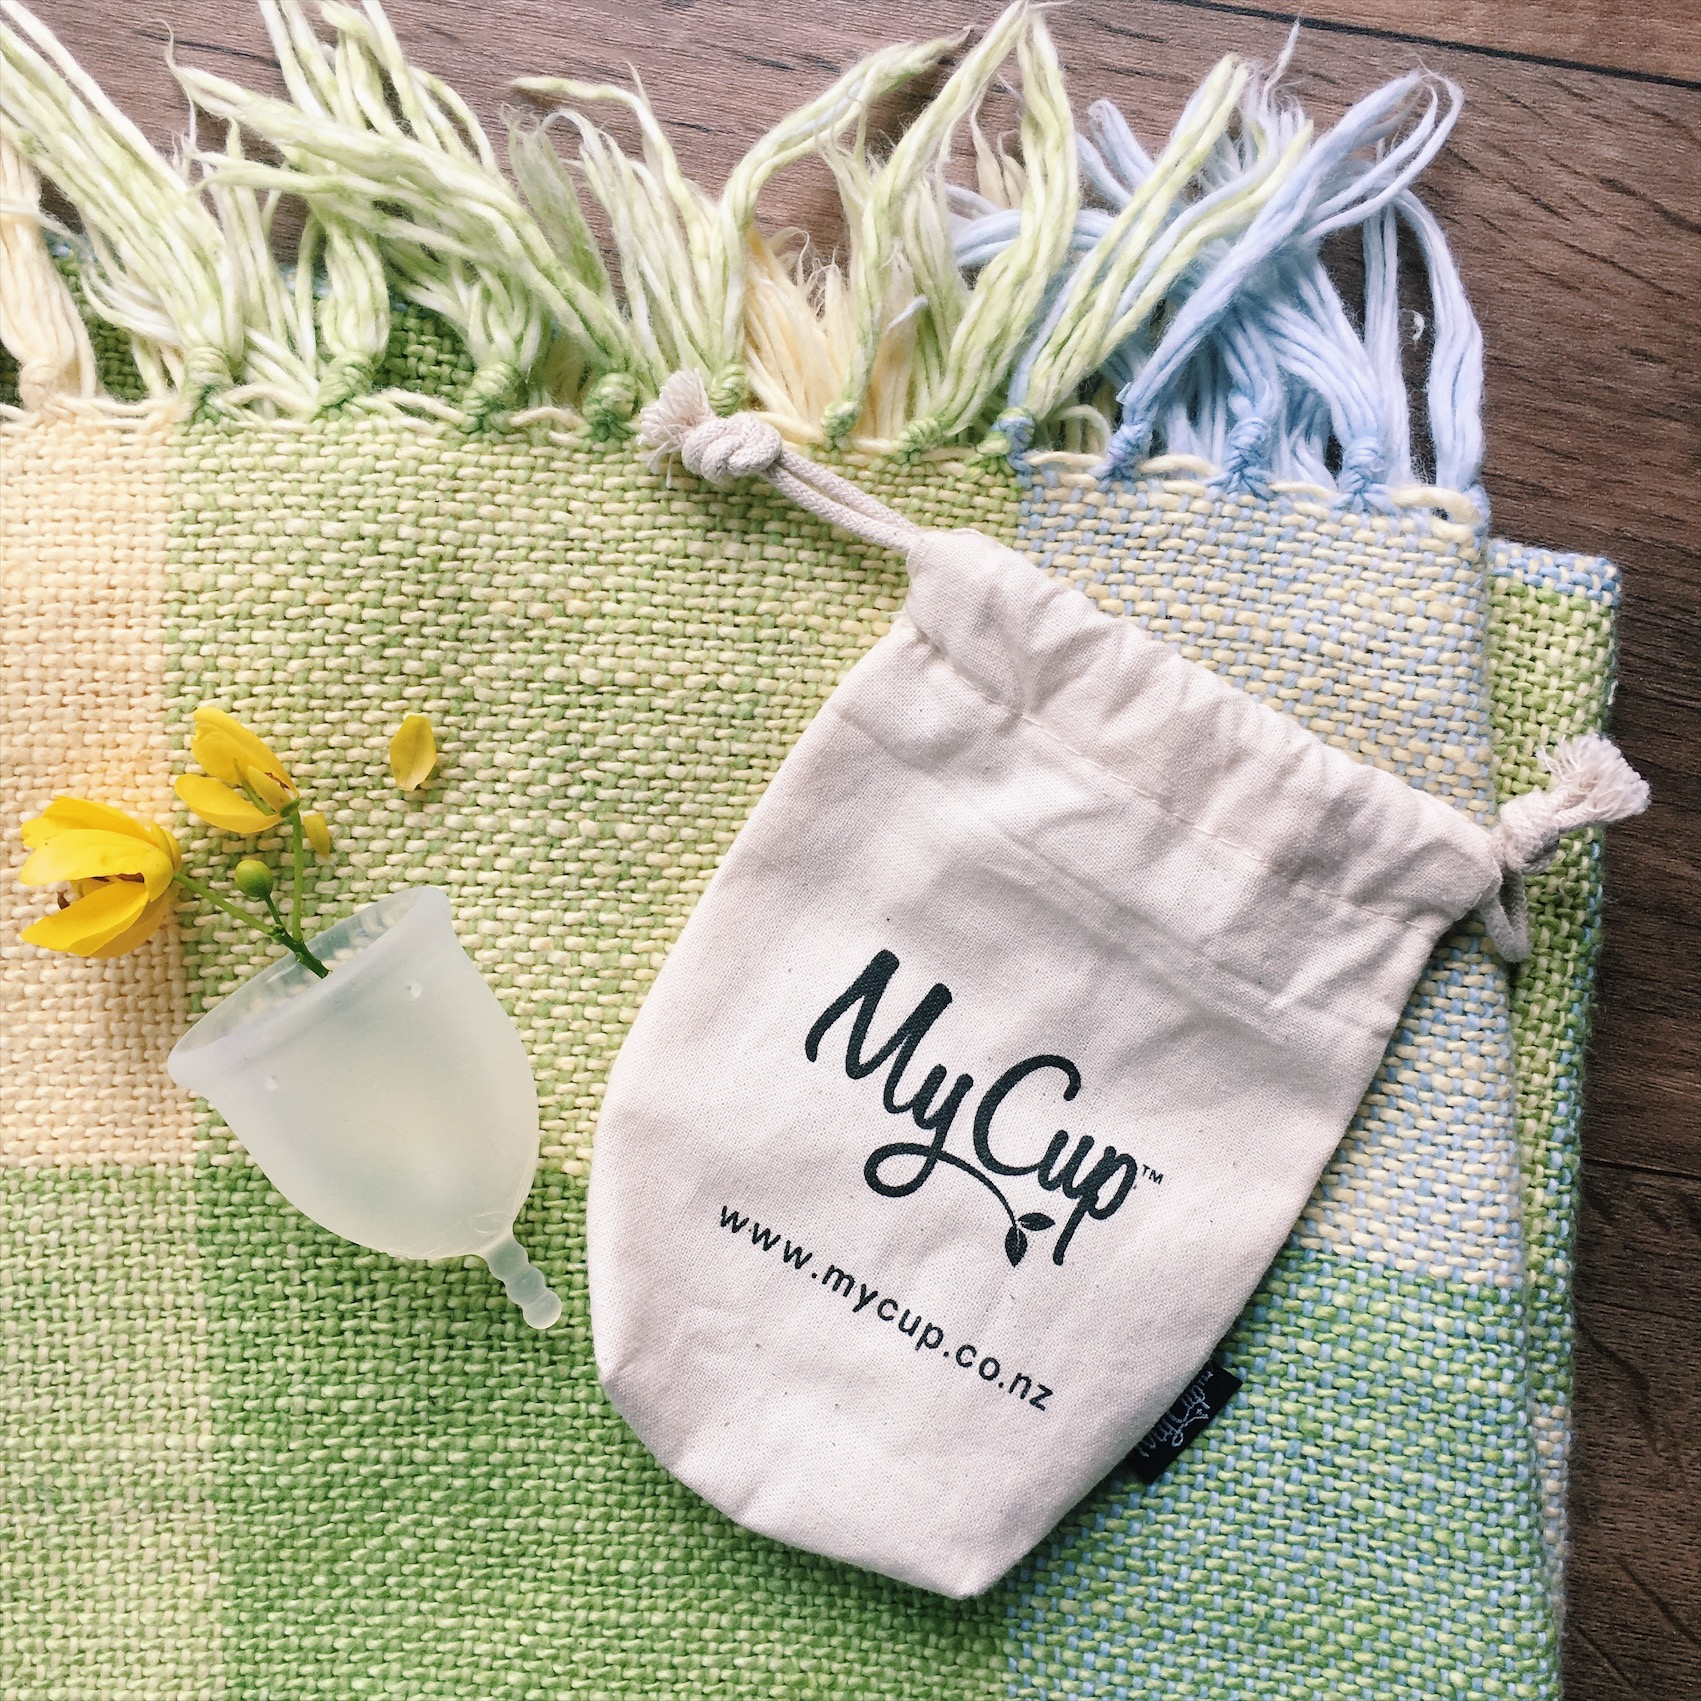 MyCup NZ - Code: ETHICALLYKATE for 10% OFF